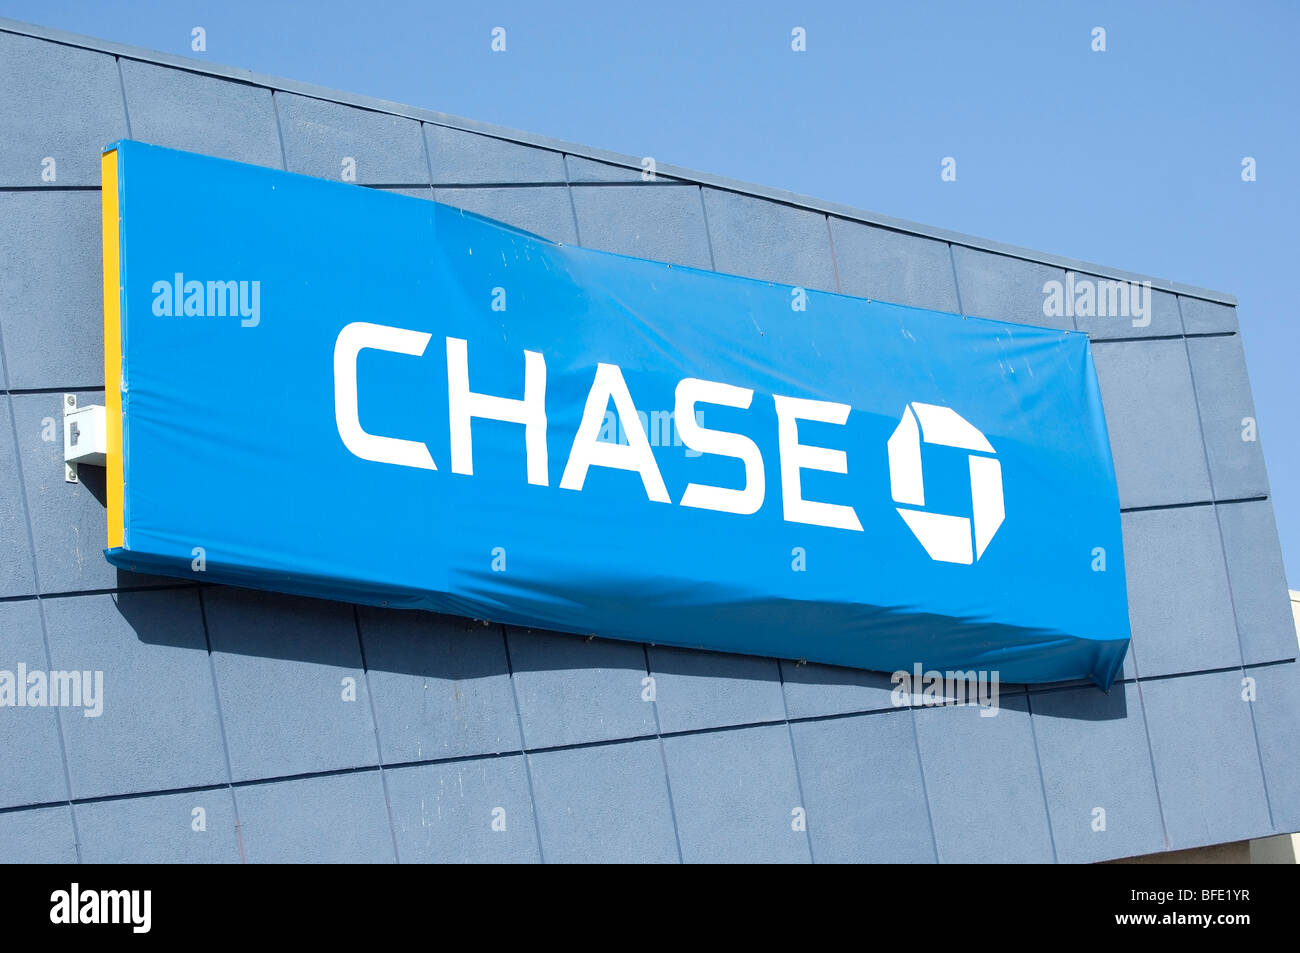 Banners cover up the former Washington Mutual Bank sign when Chase Bank replaced it. - Stock Image